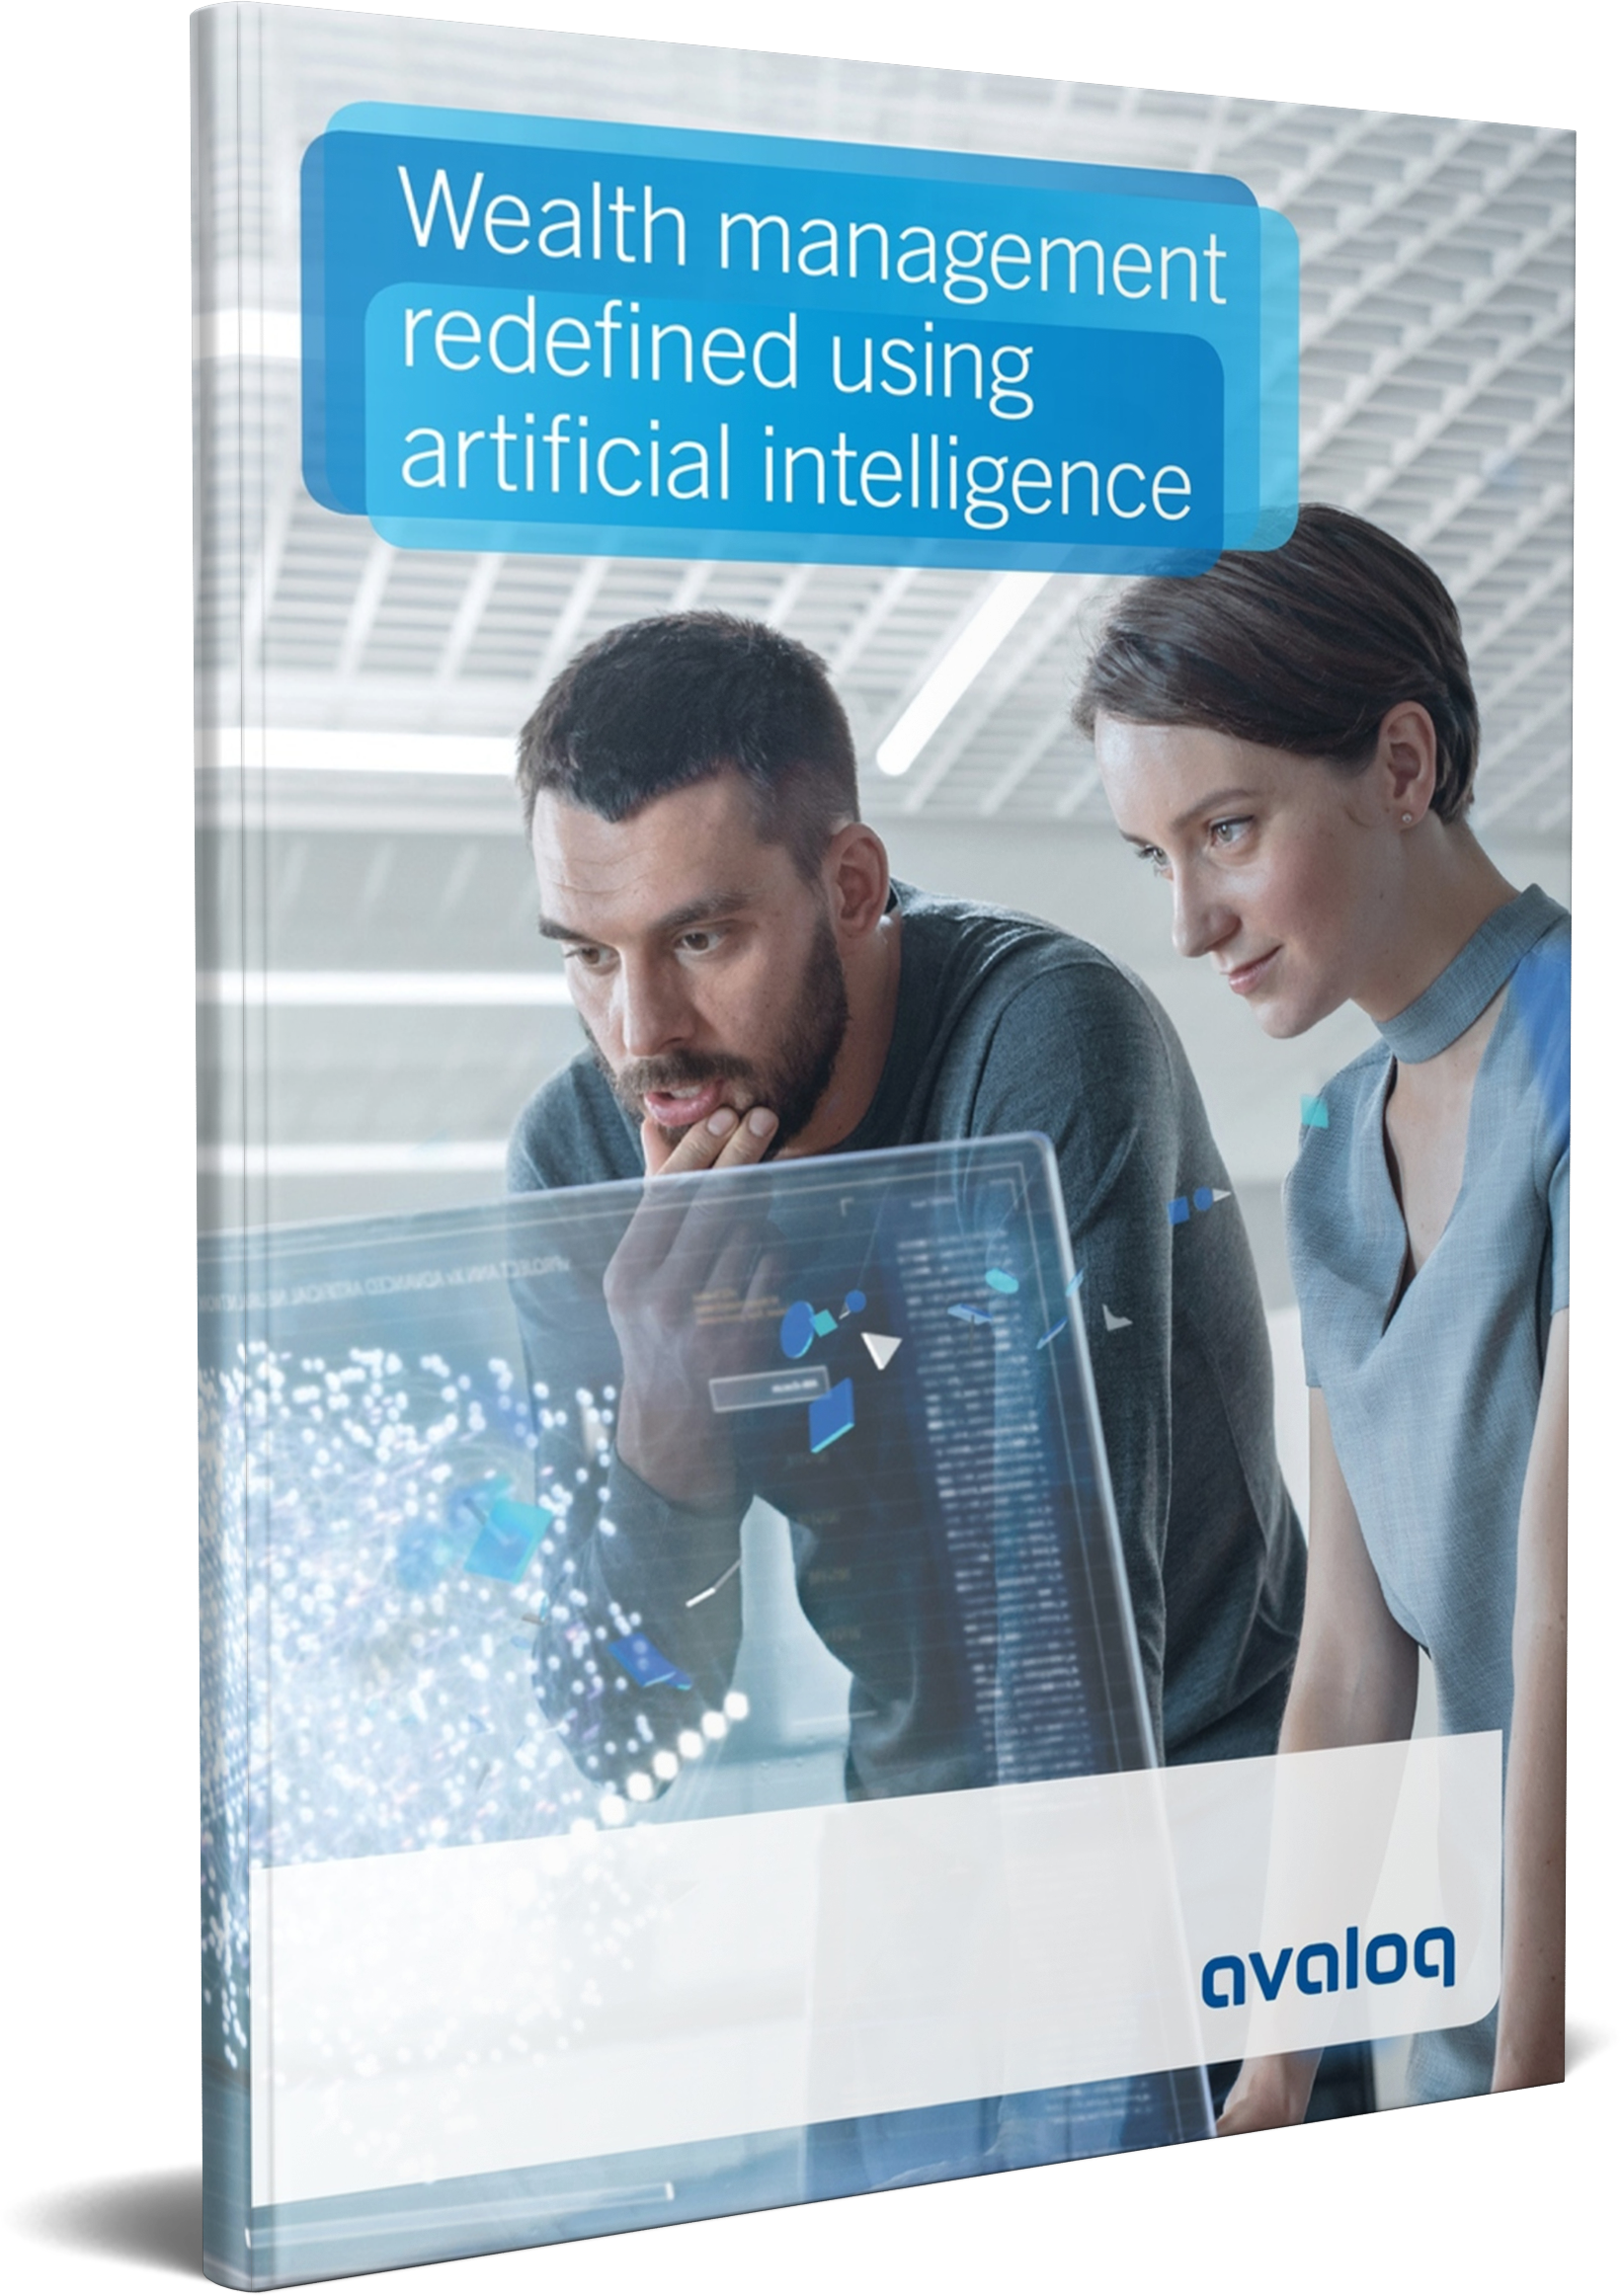 Wealth management redefined using artificial intelligence